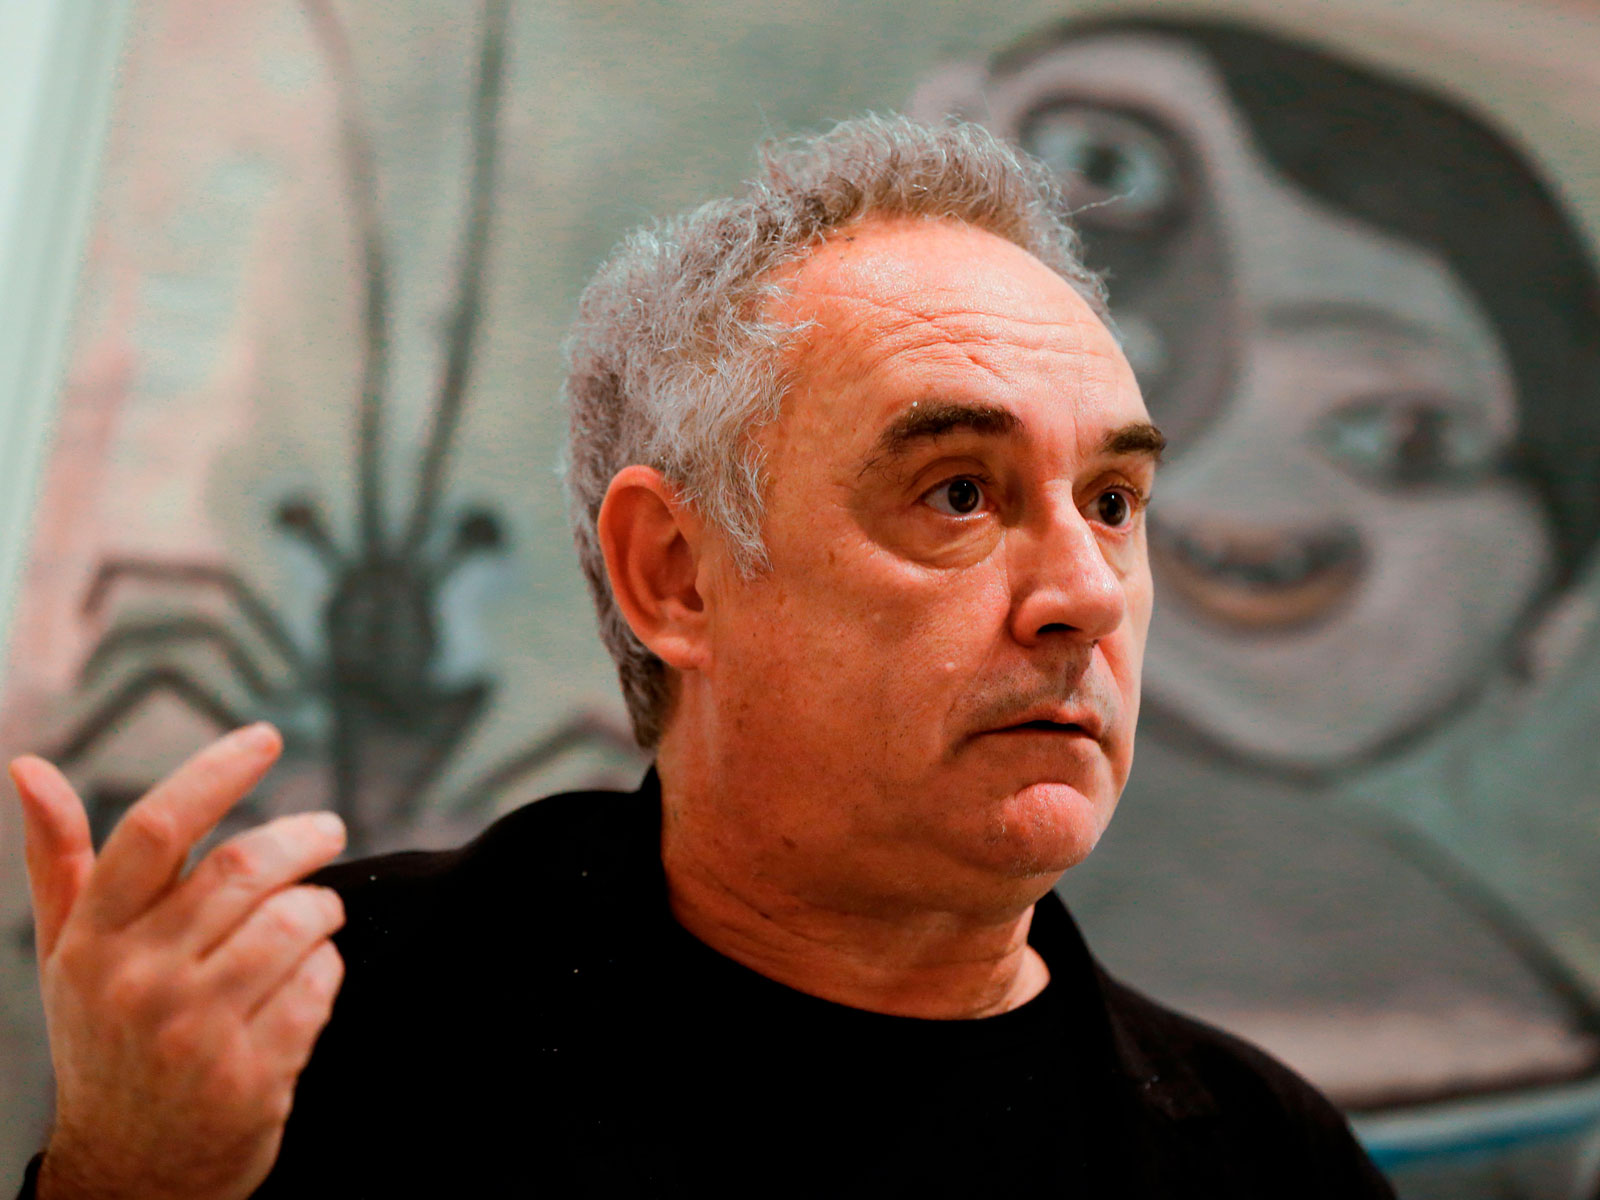 Ferran Adrià's New El Bulli Venture Promises to Be Even More Experimental